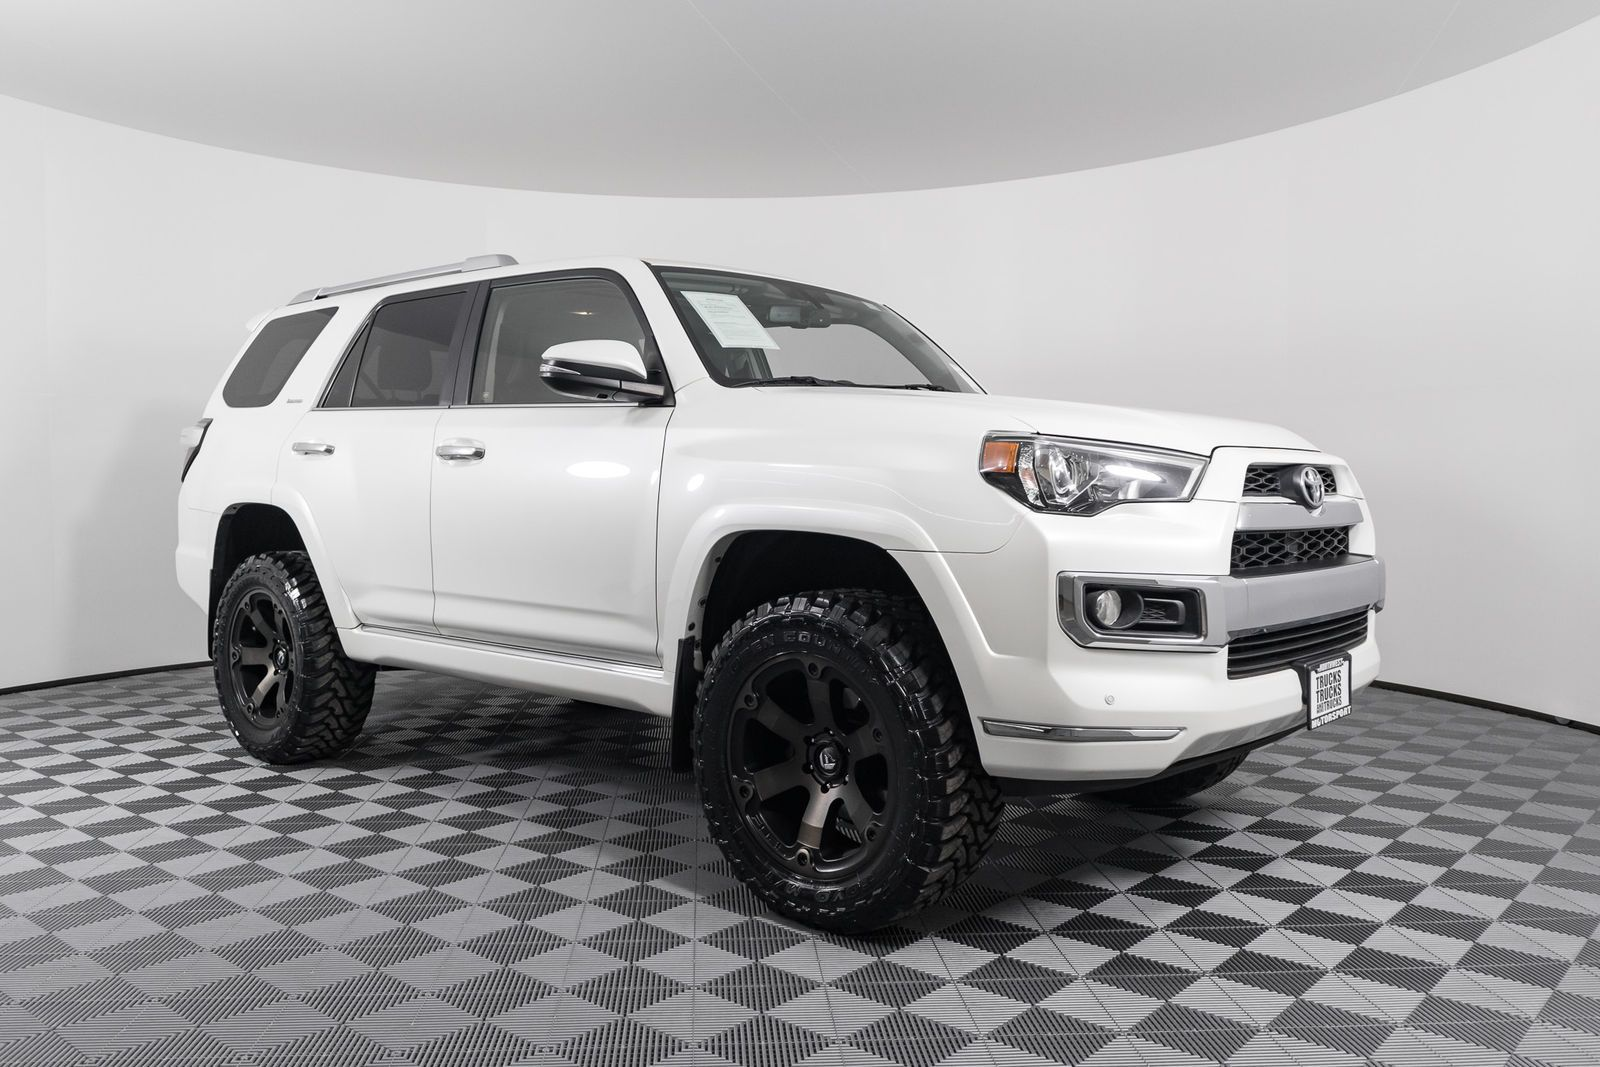 Used Lifted 2016 Toyota 4Runner Limited 4x4 SUV For Sale